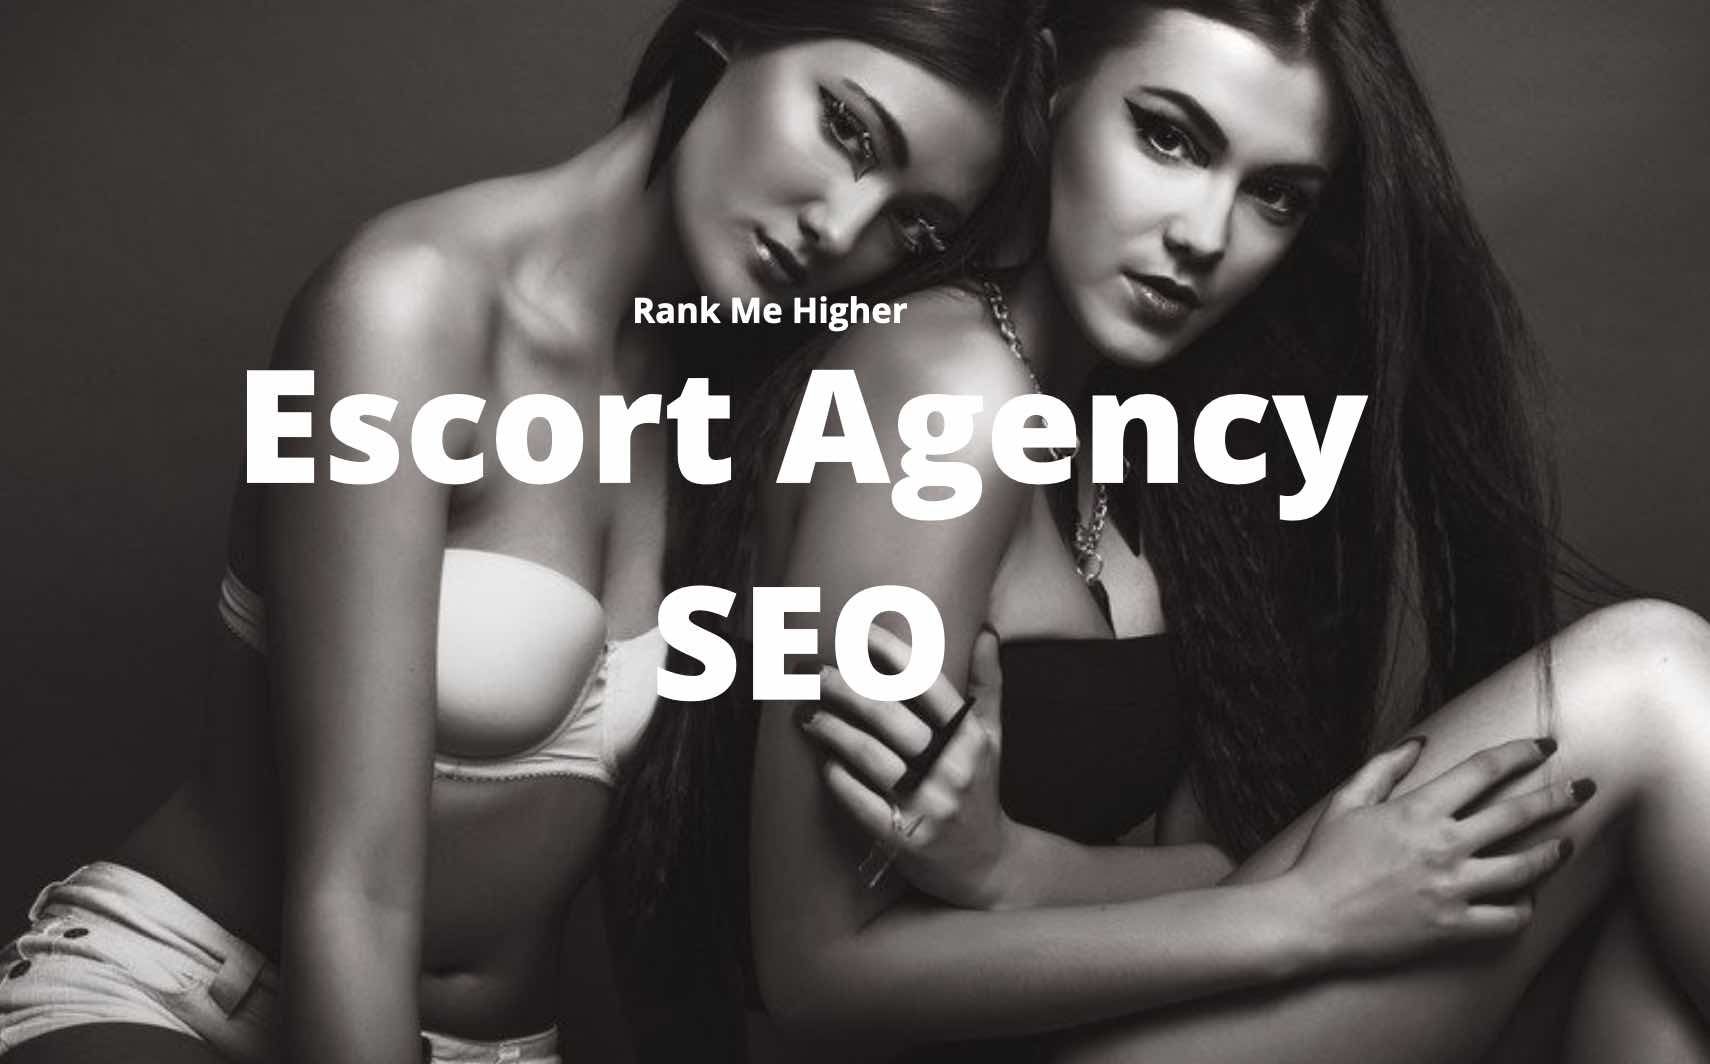 Escort Agency SEO services